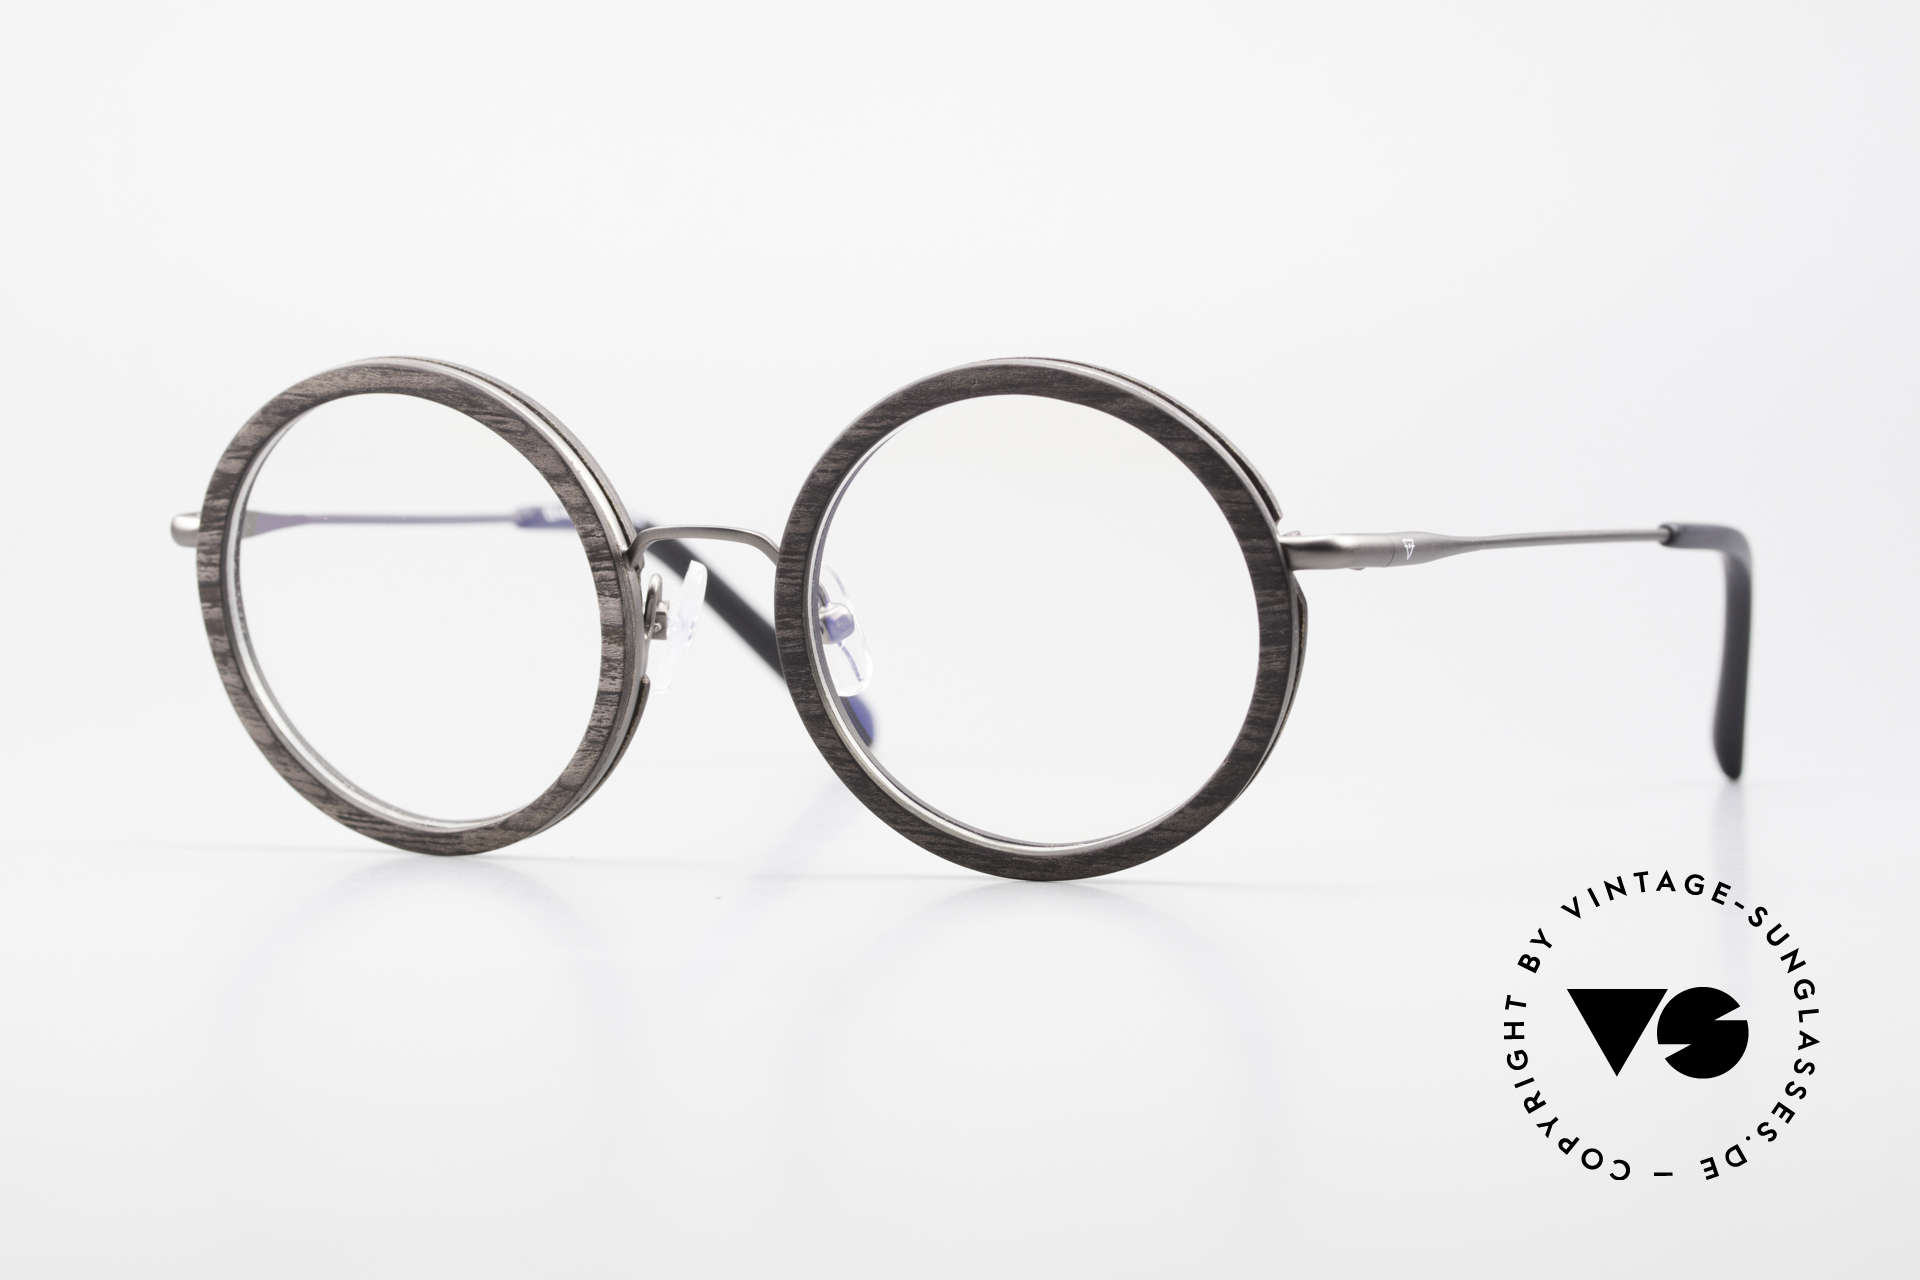 Kerbholz Rudolph Wood Frame Round Blackwood, round wood eyeglasses by Kerbholz, made in Germany, Made for Men and Women